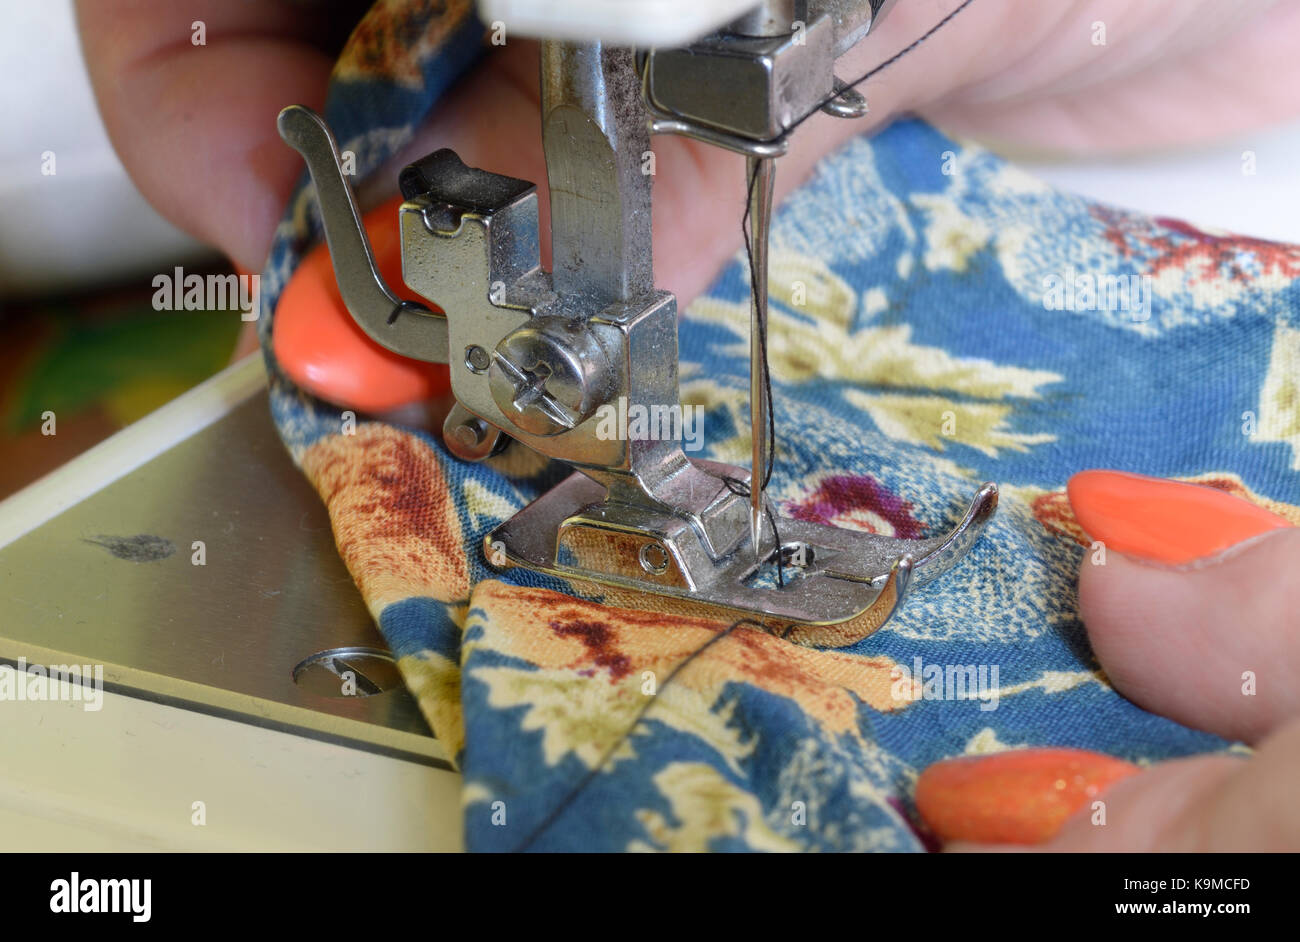 Needle Bar Stock Photos Images Alamy Parts Heating Element As Well Singer Sewing Machine Diagram Seamstress Sews On A Of Presser